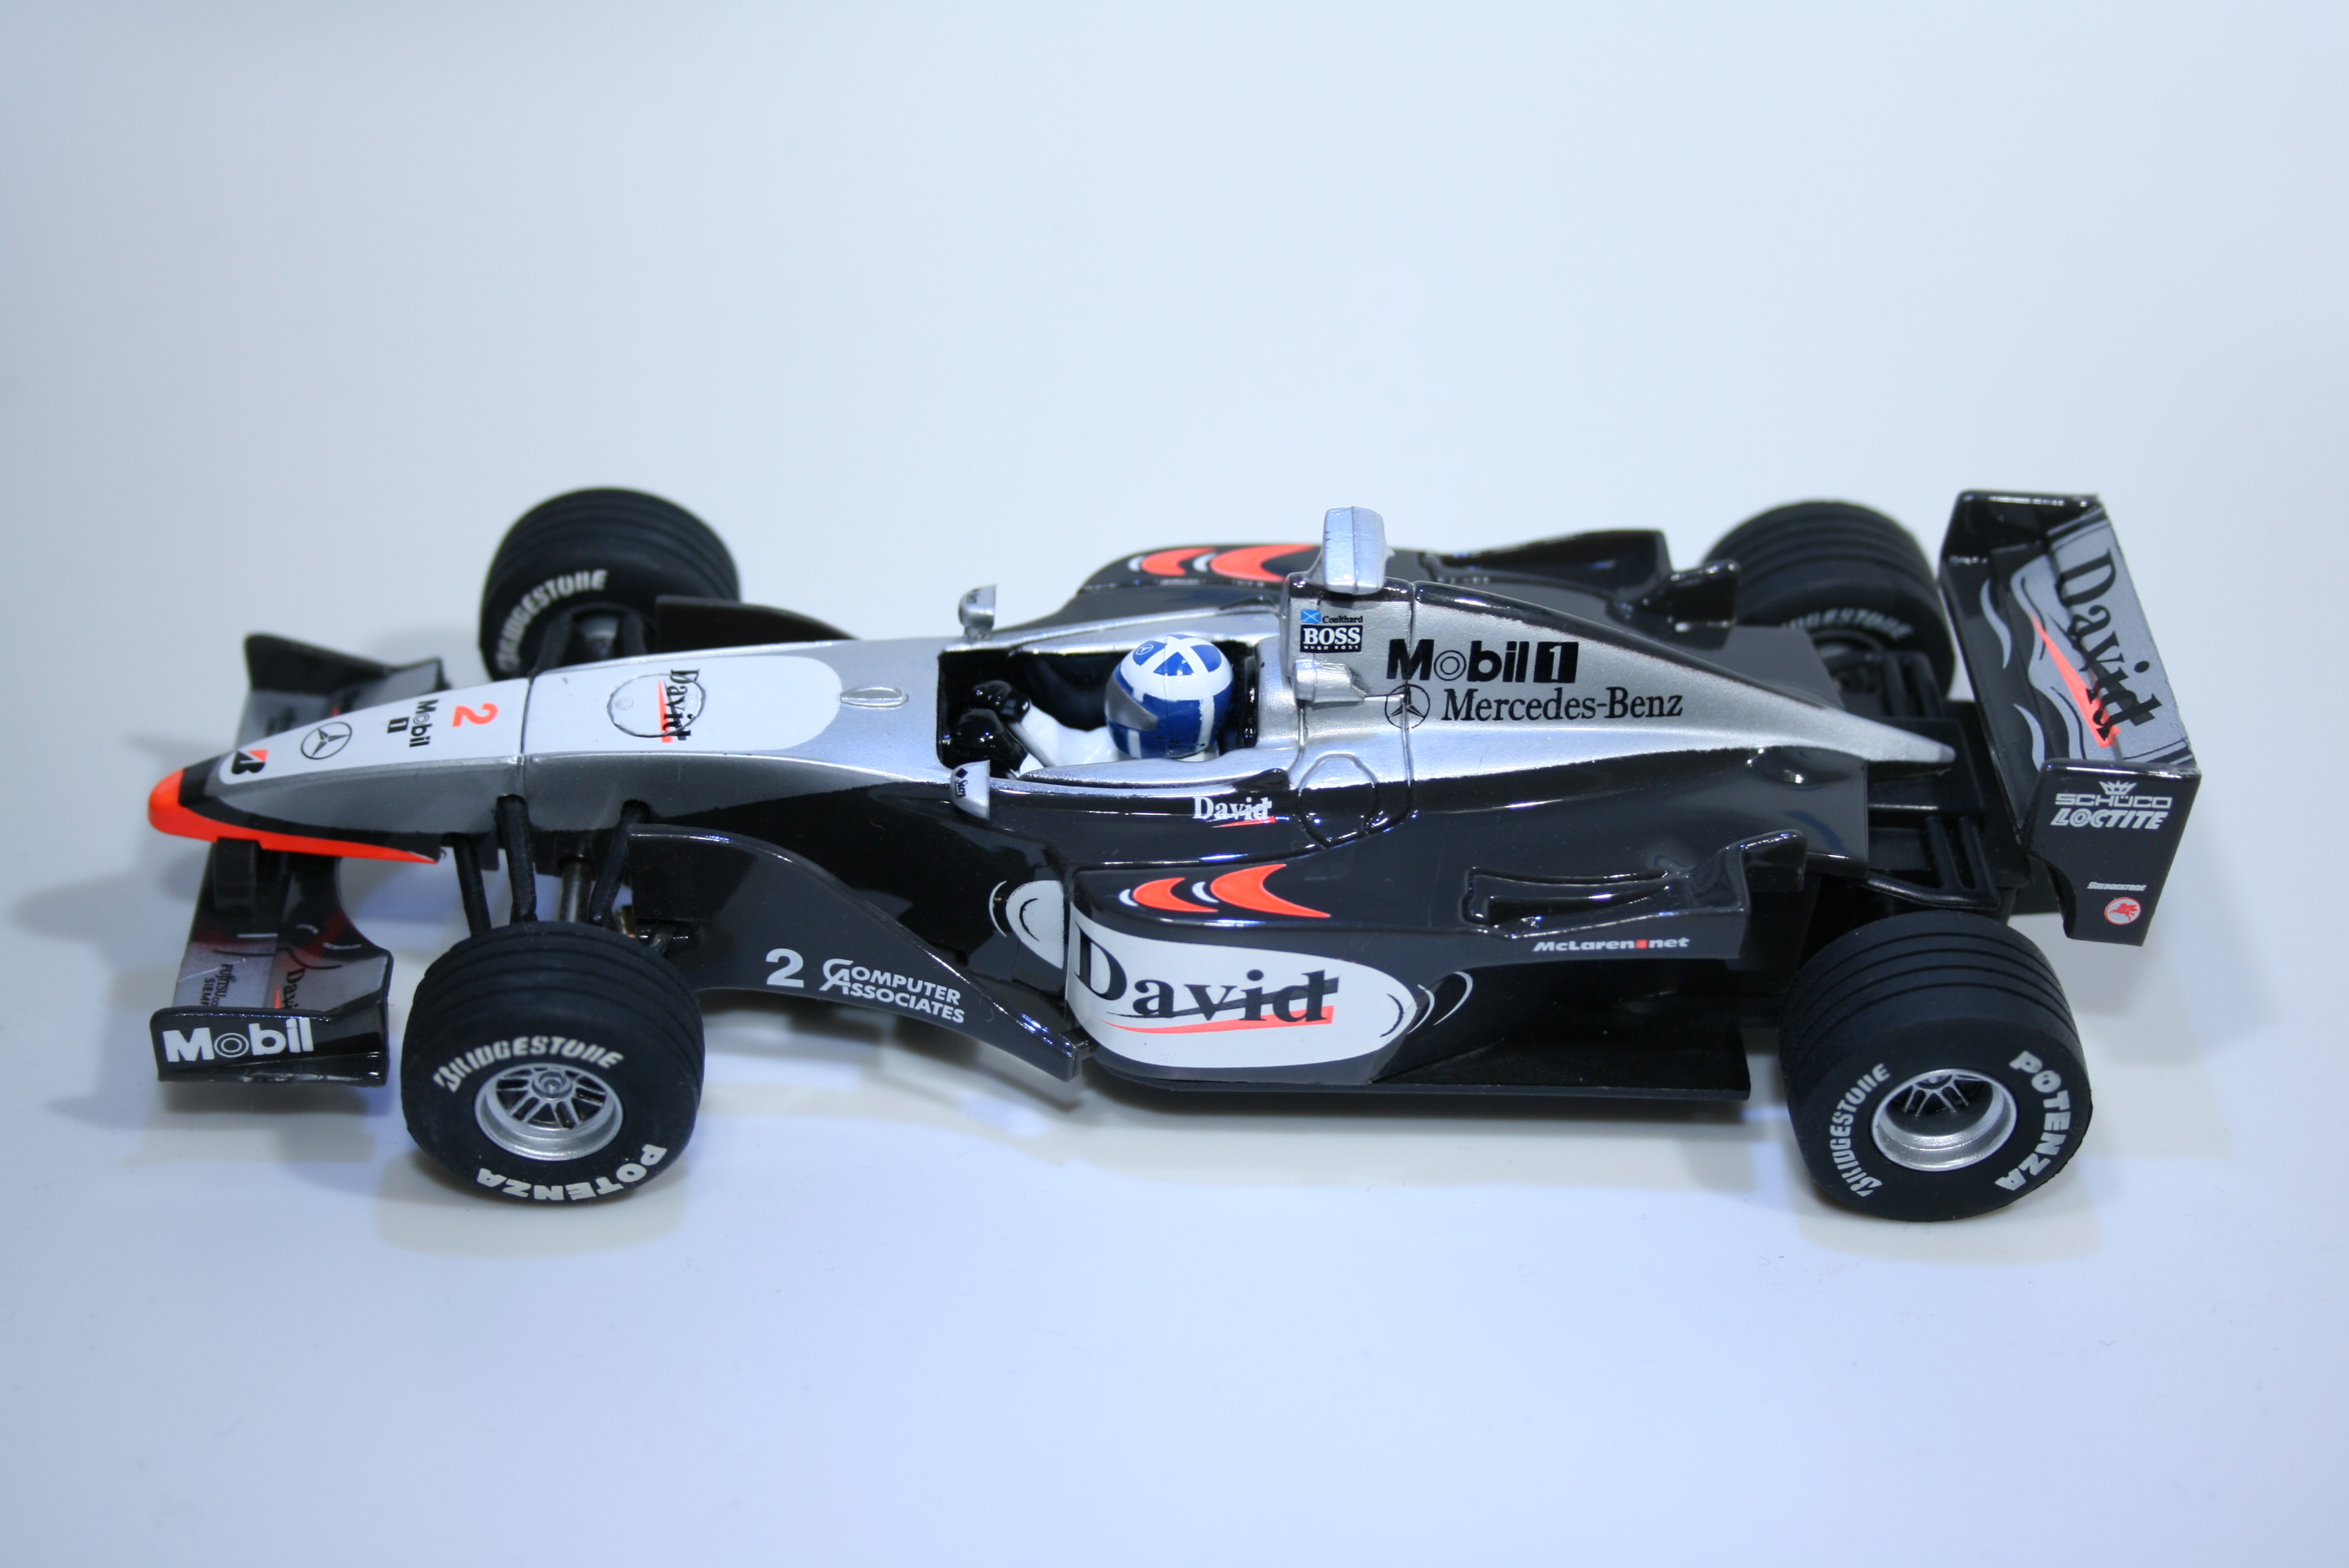 593 Mclaren MP4/15 2000 D Coulthard Carrera 25425 2000 Boxed